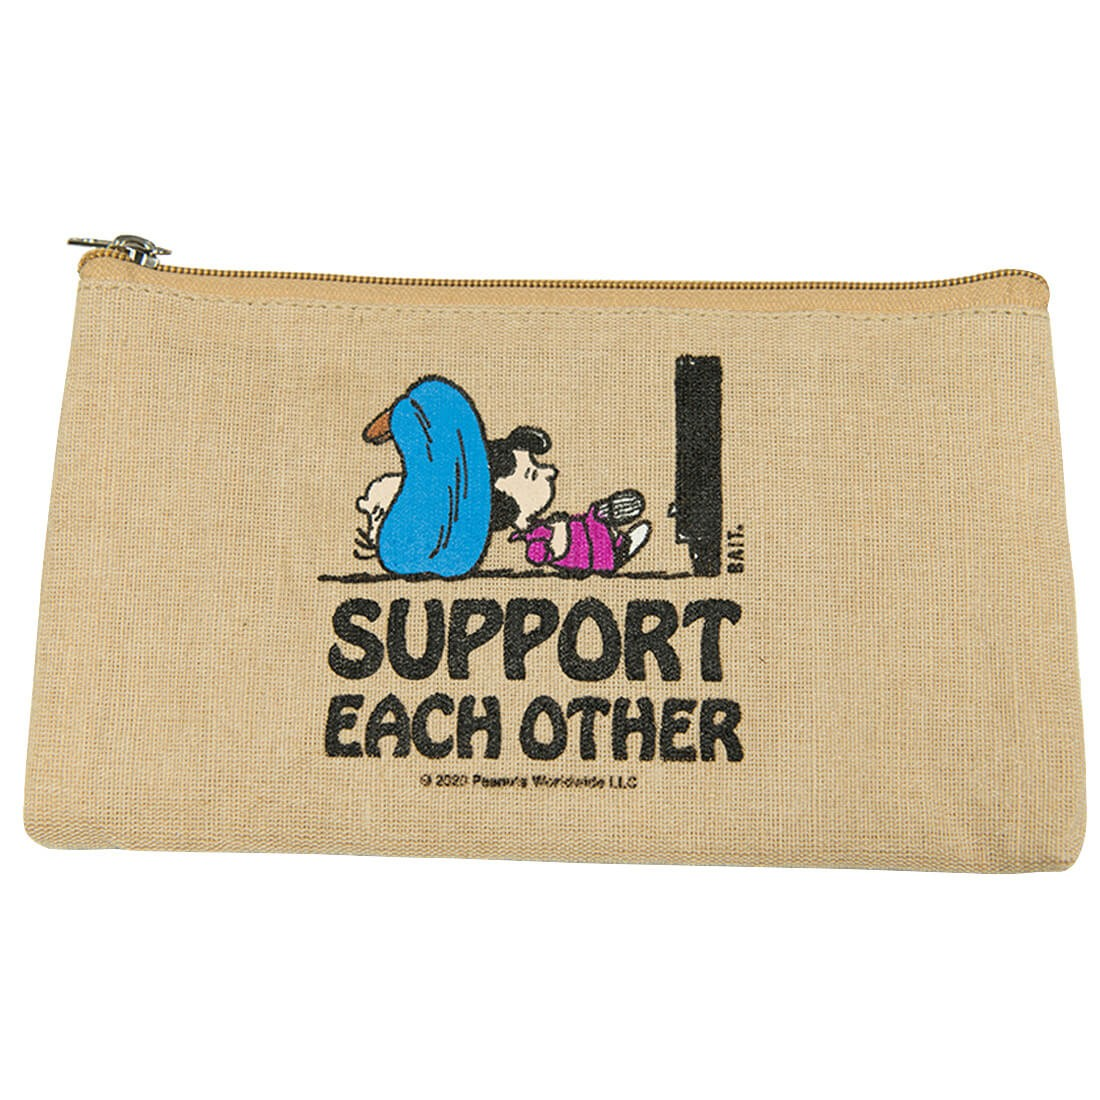 BAIT x Snoopy Support Each Other Pouch (natural)